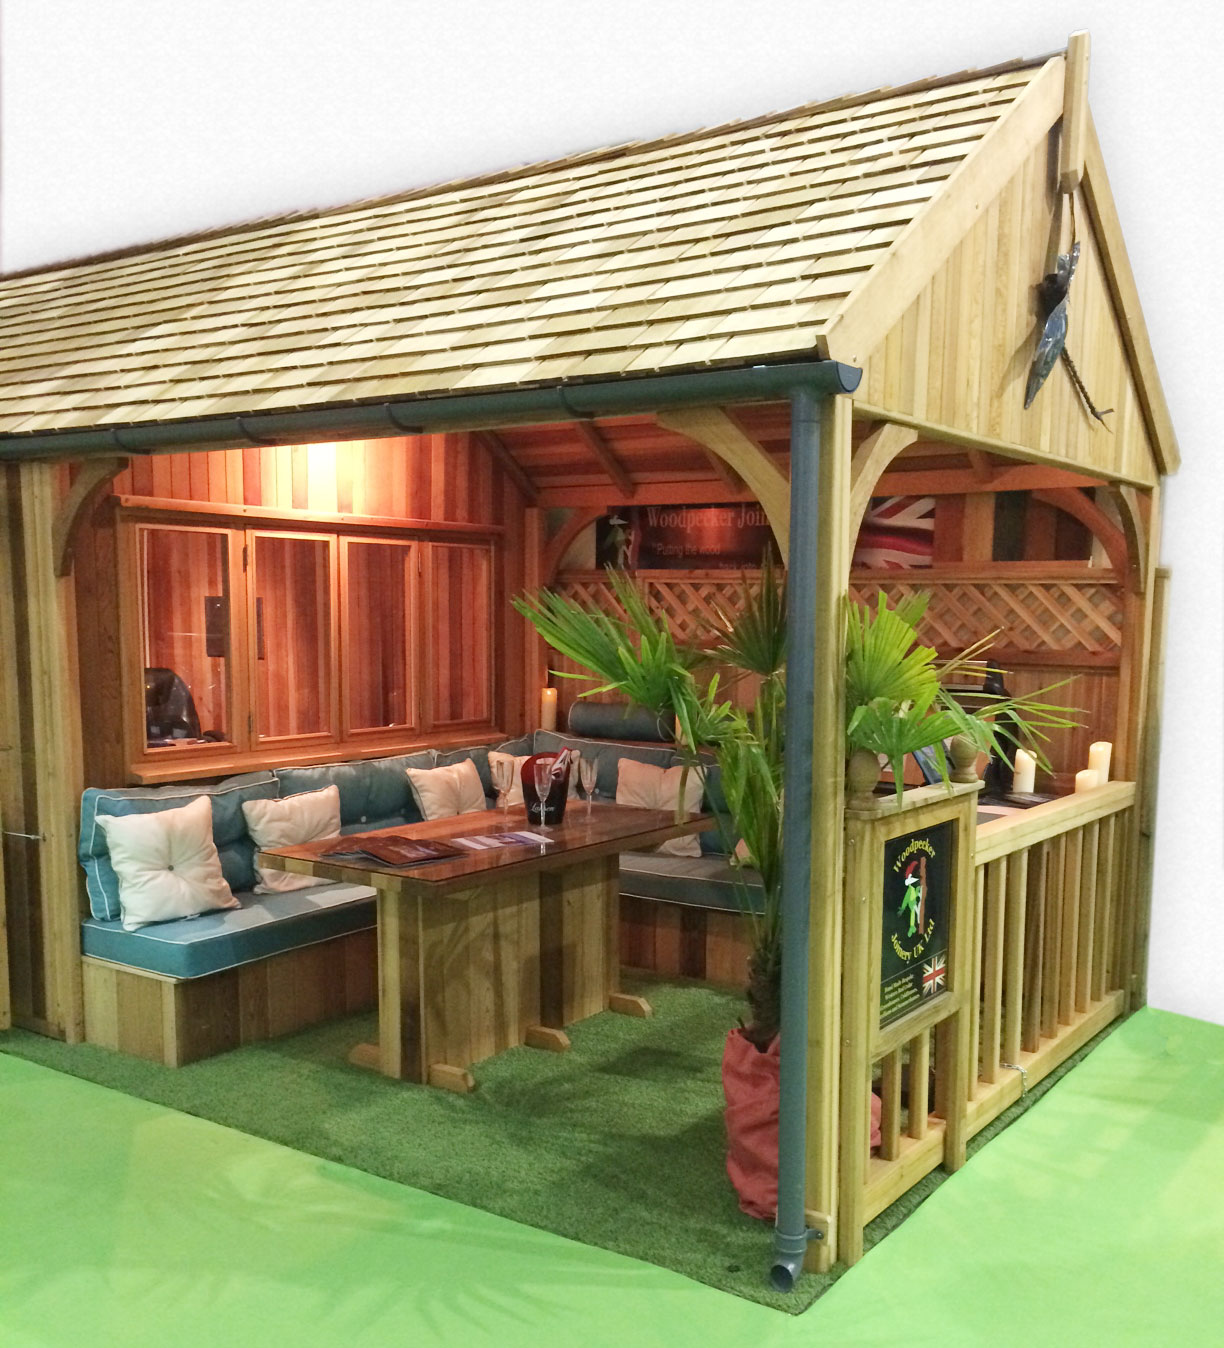 Verandah on lean to sheds ireland